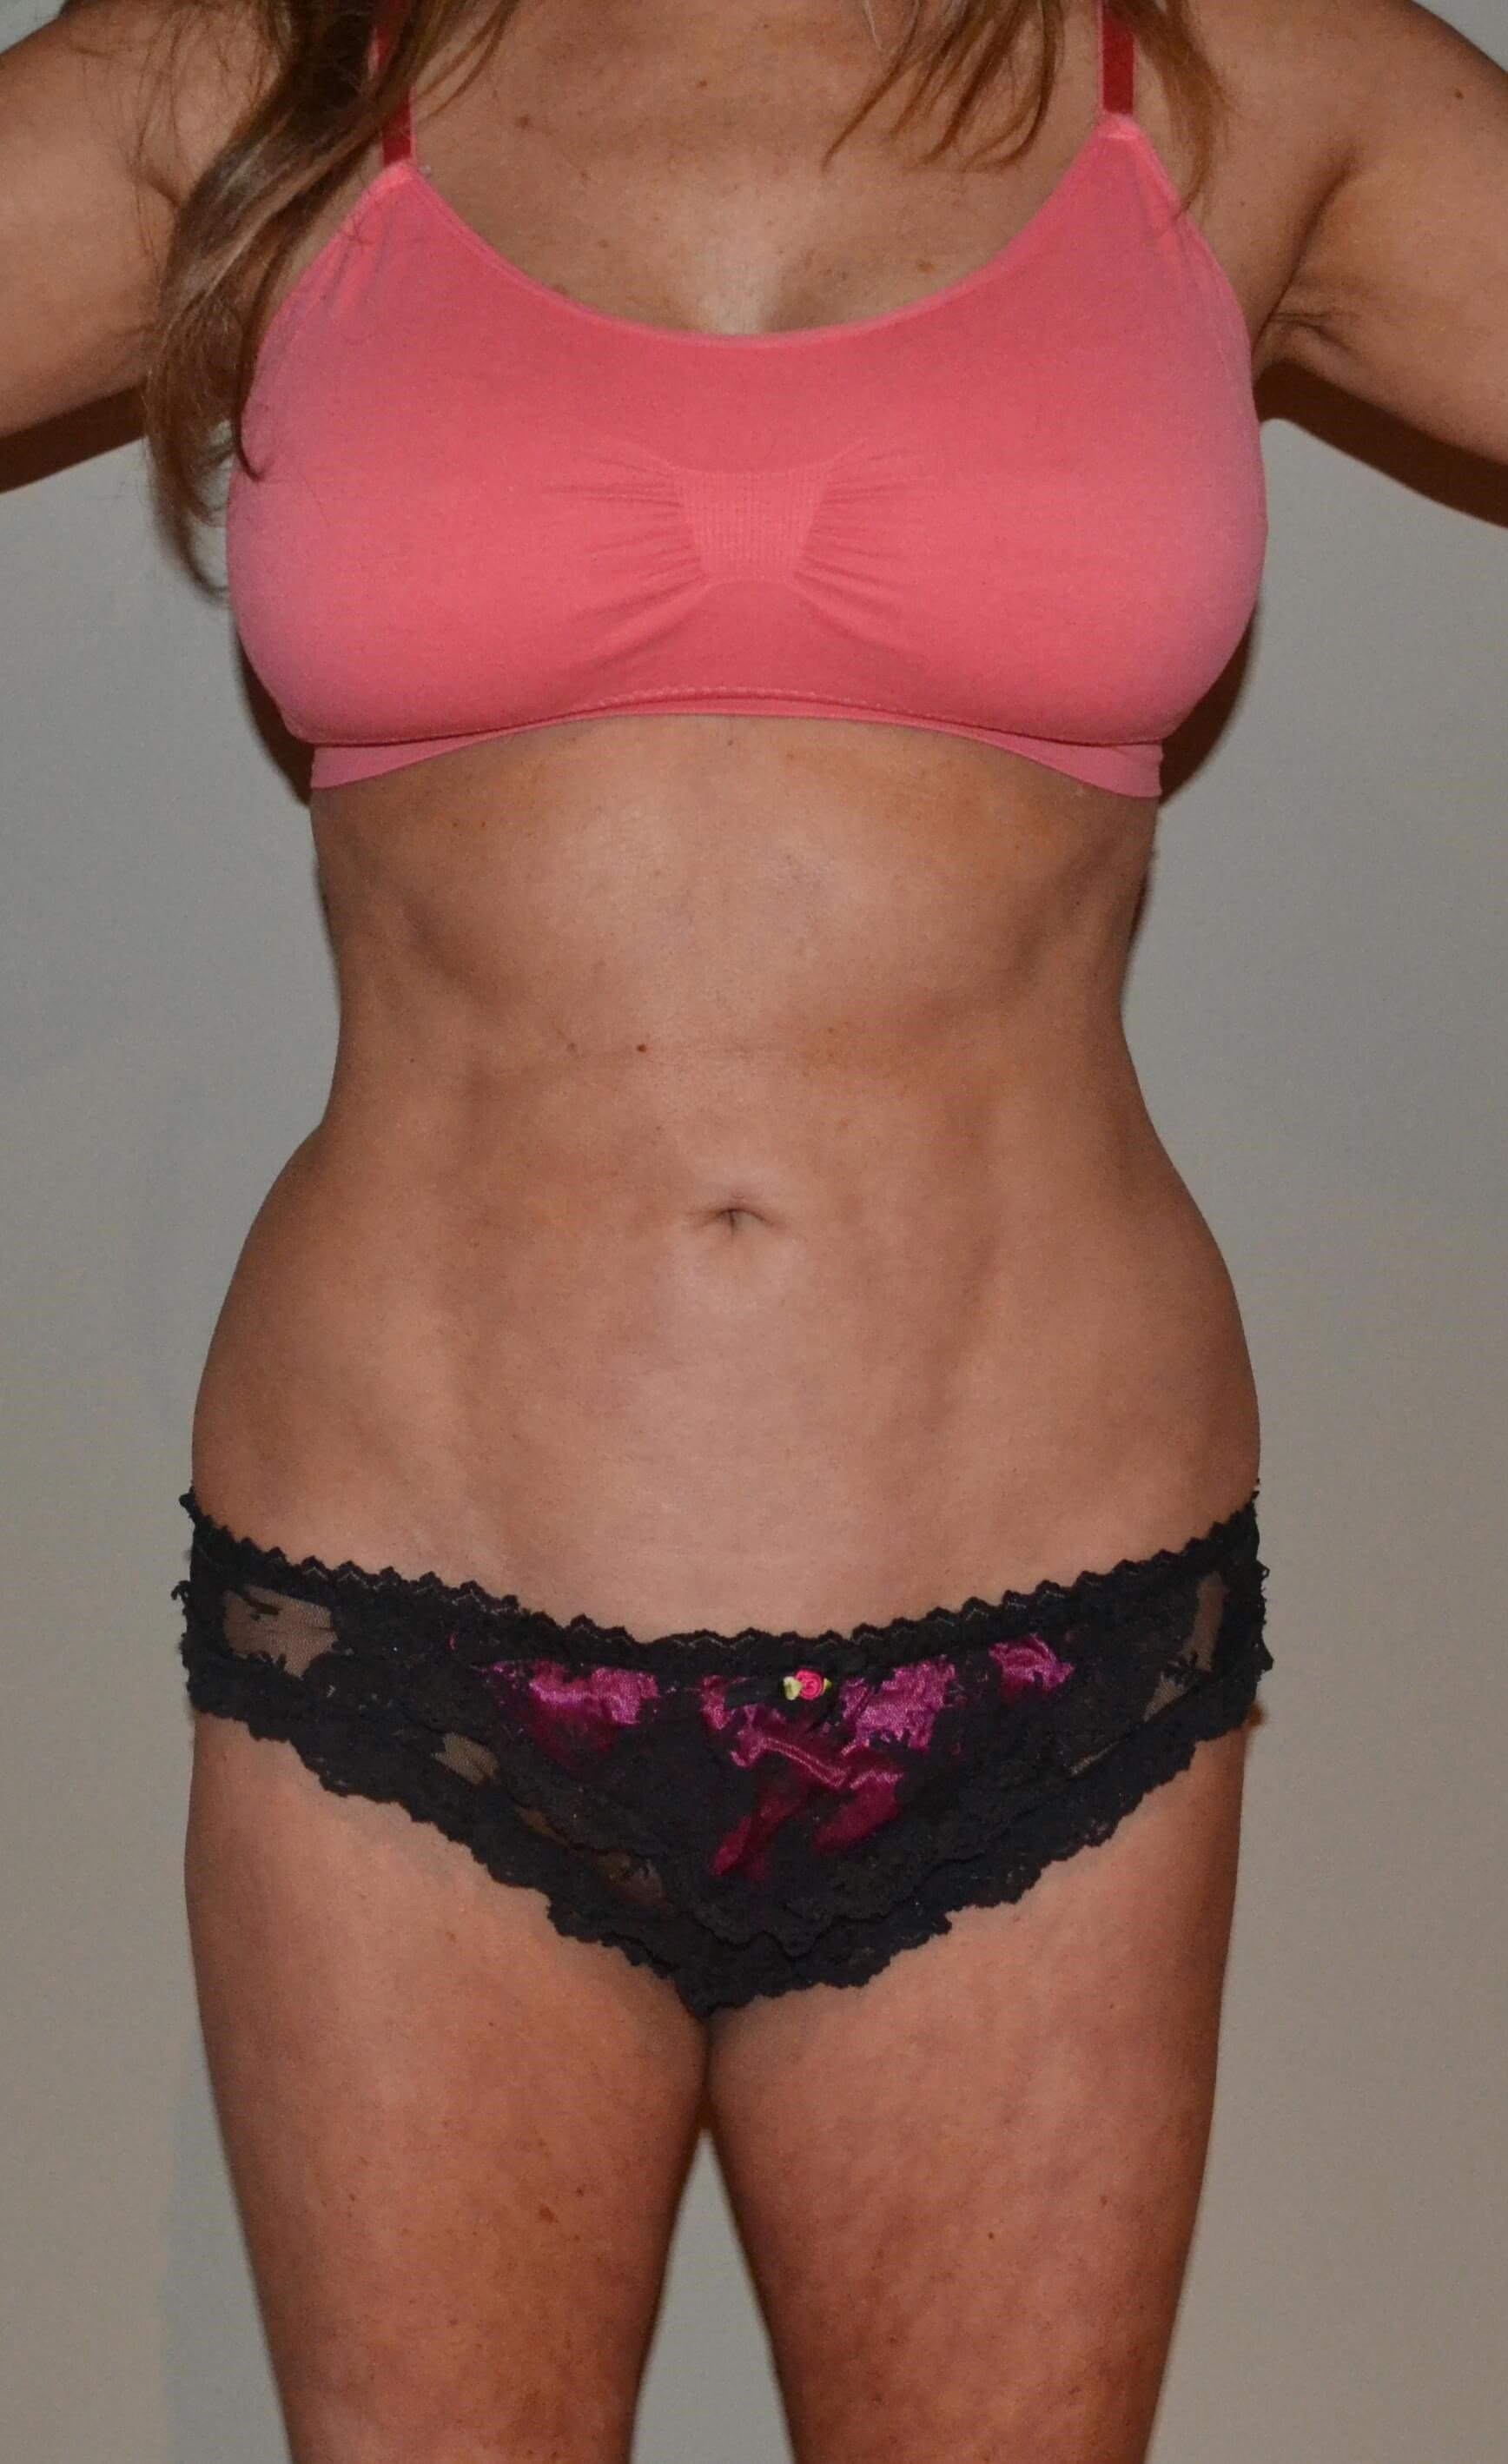 VASER Hi Def Lipo After, frontal view